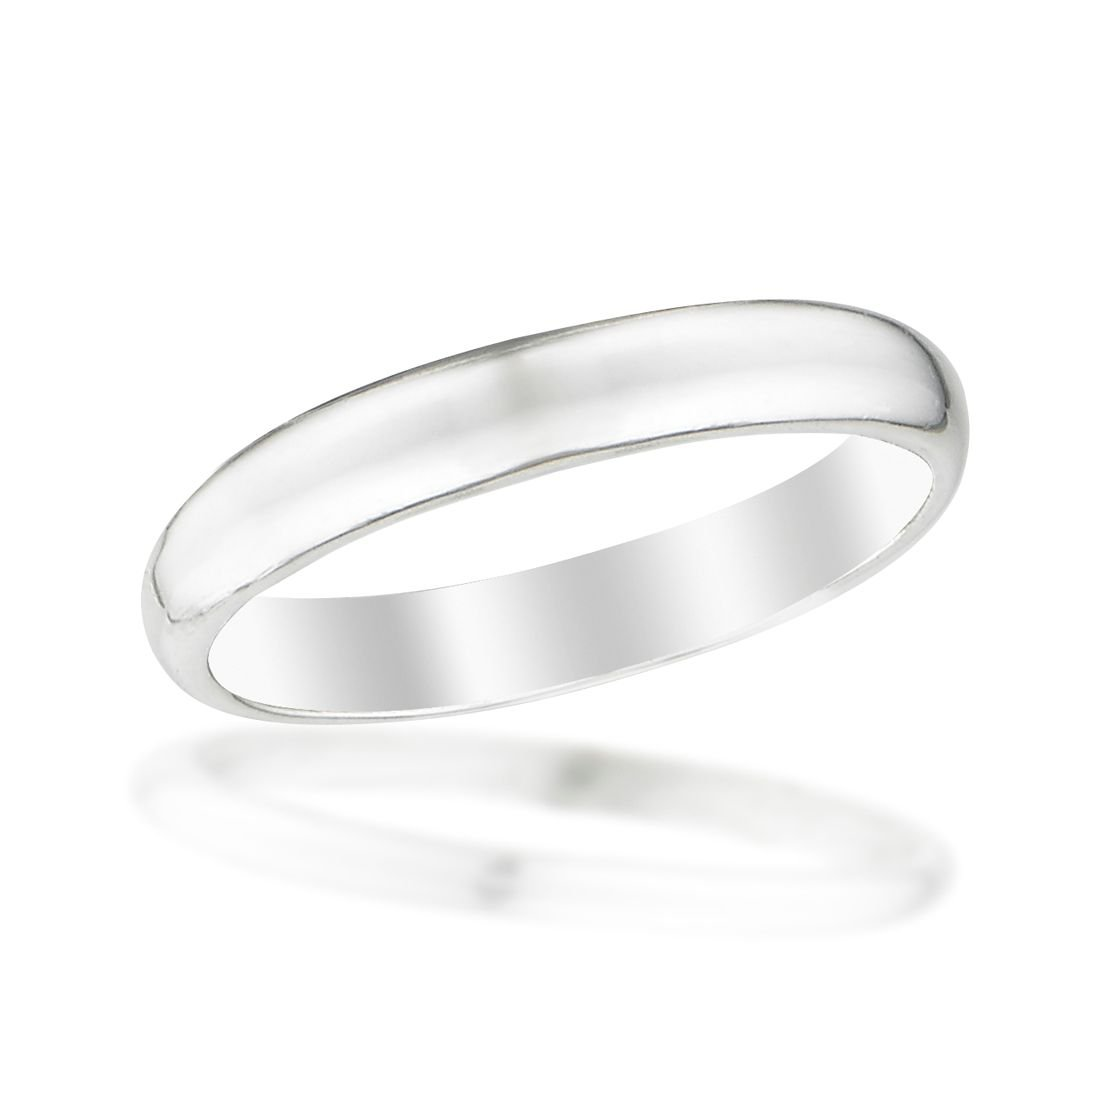 Beloved Child Goods Sterling Silver Baby Ring, 2mm domed band in a size 1 for 3-18 months, beautifully gift packaged by makes an Ideal Baby Shower, Baptism or Christening, New Baby or Christmas gift. 50155 1